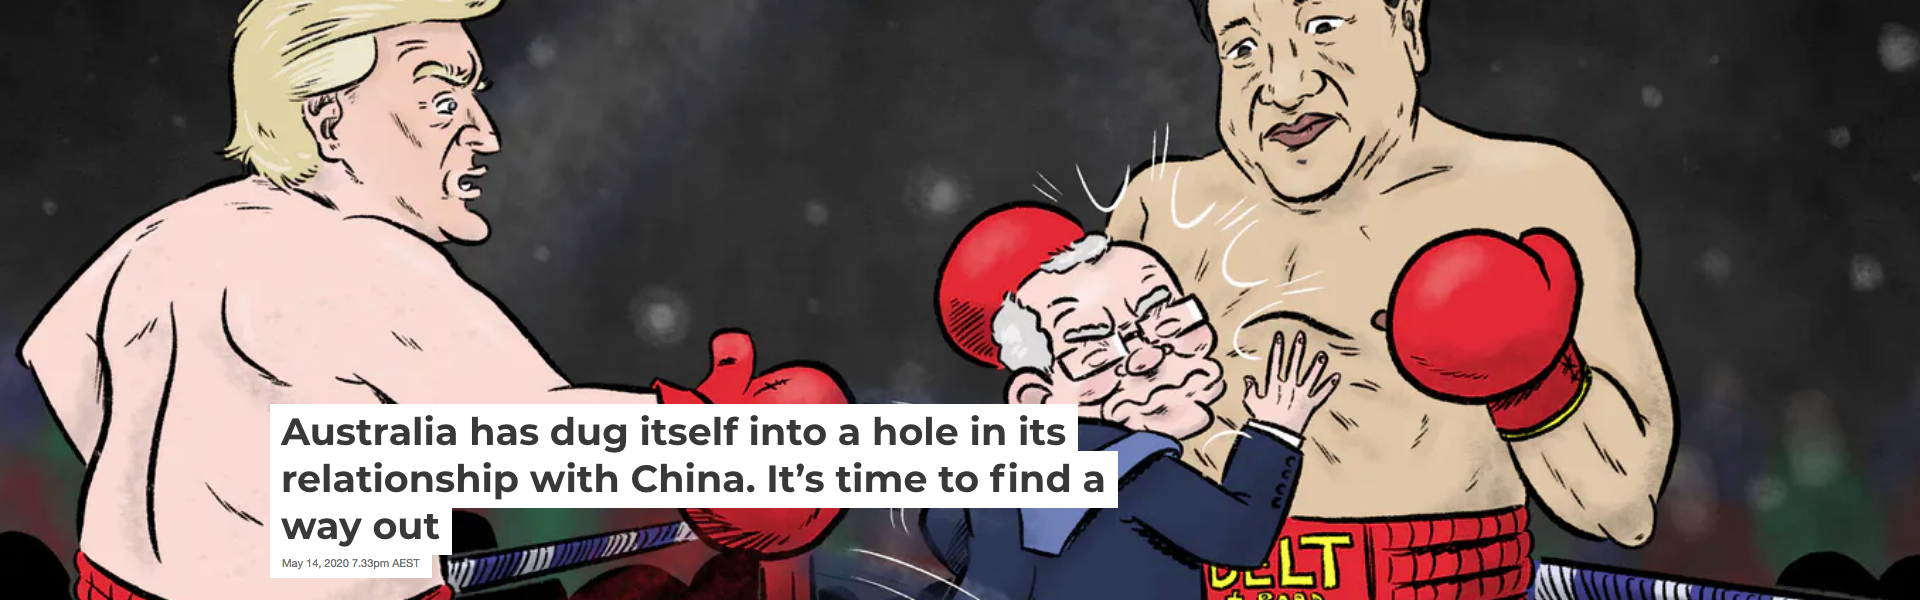 Screenshot_2020-05-15 Australia has dug itself into a hole in its relationship with China It's time to find a way out